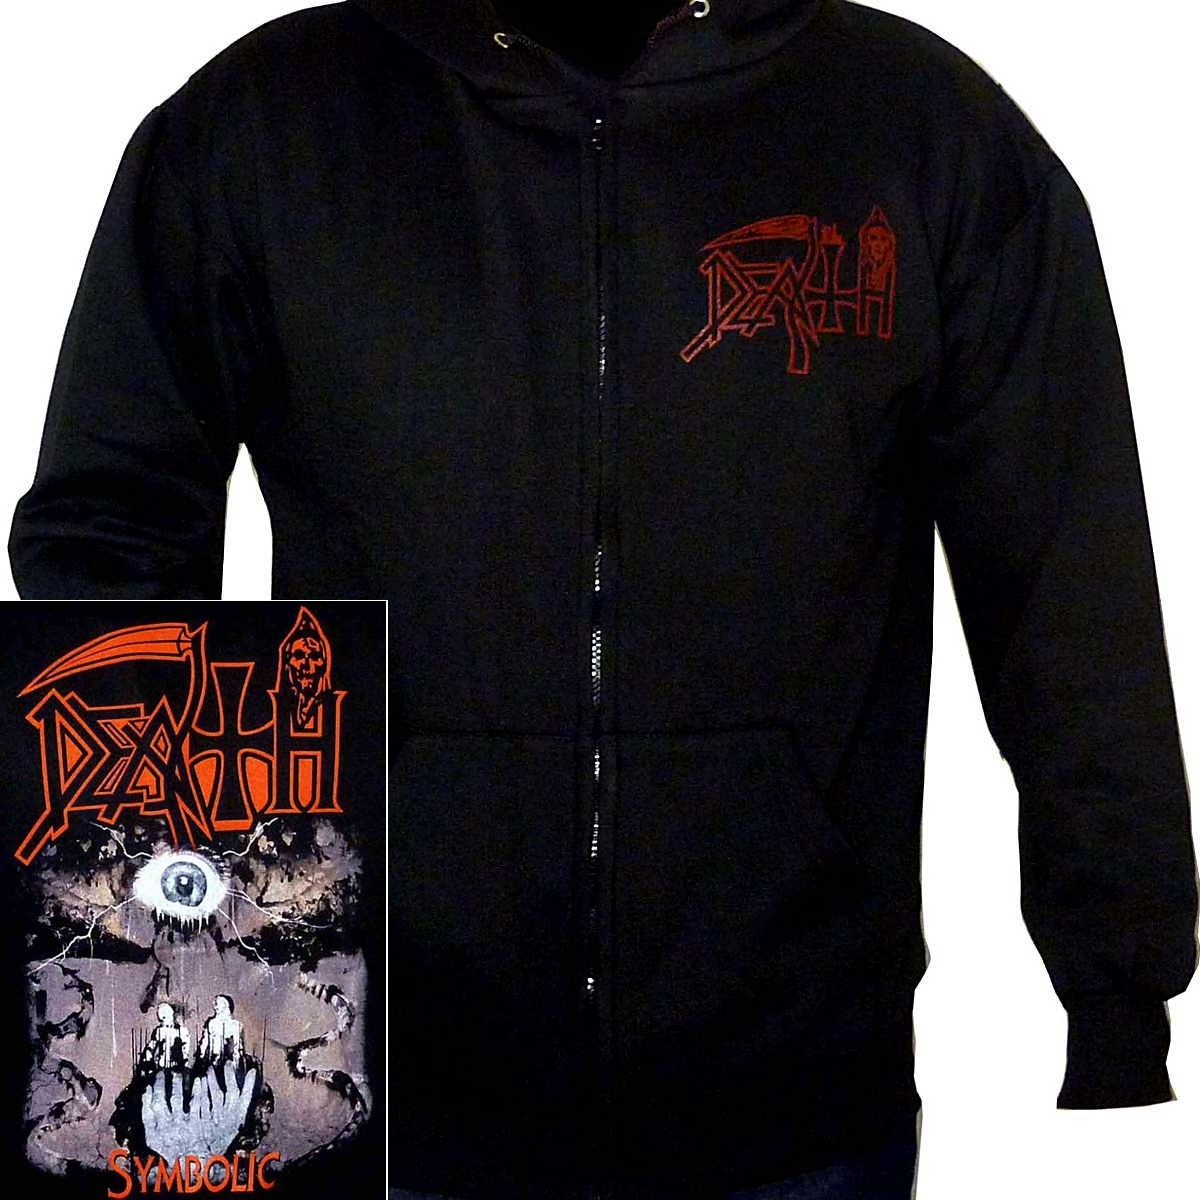 Death Symbolic Hoodie Size Xl Hoodies Pinterest Bullet For My Valentine